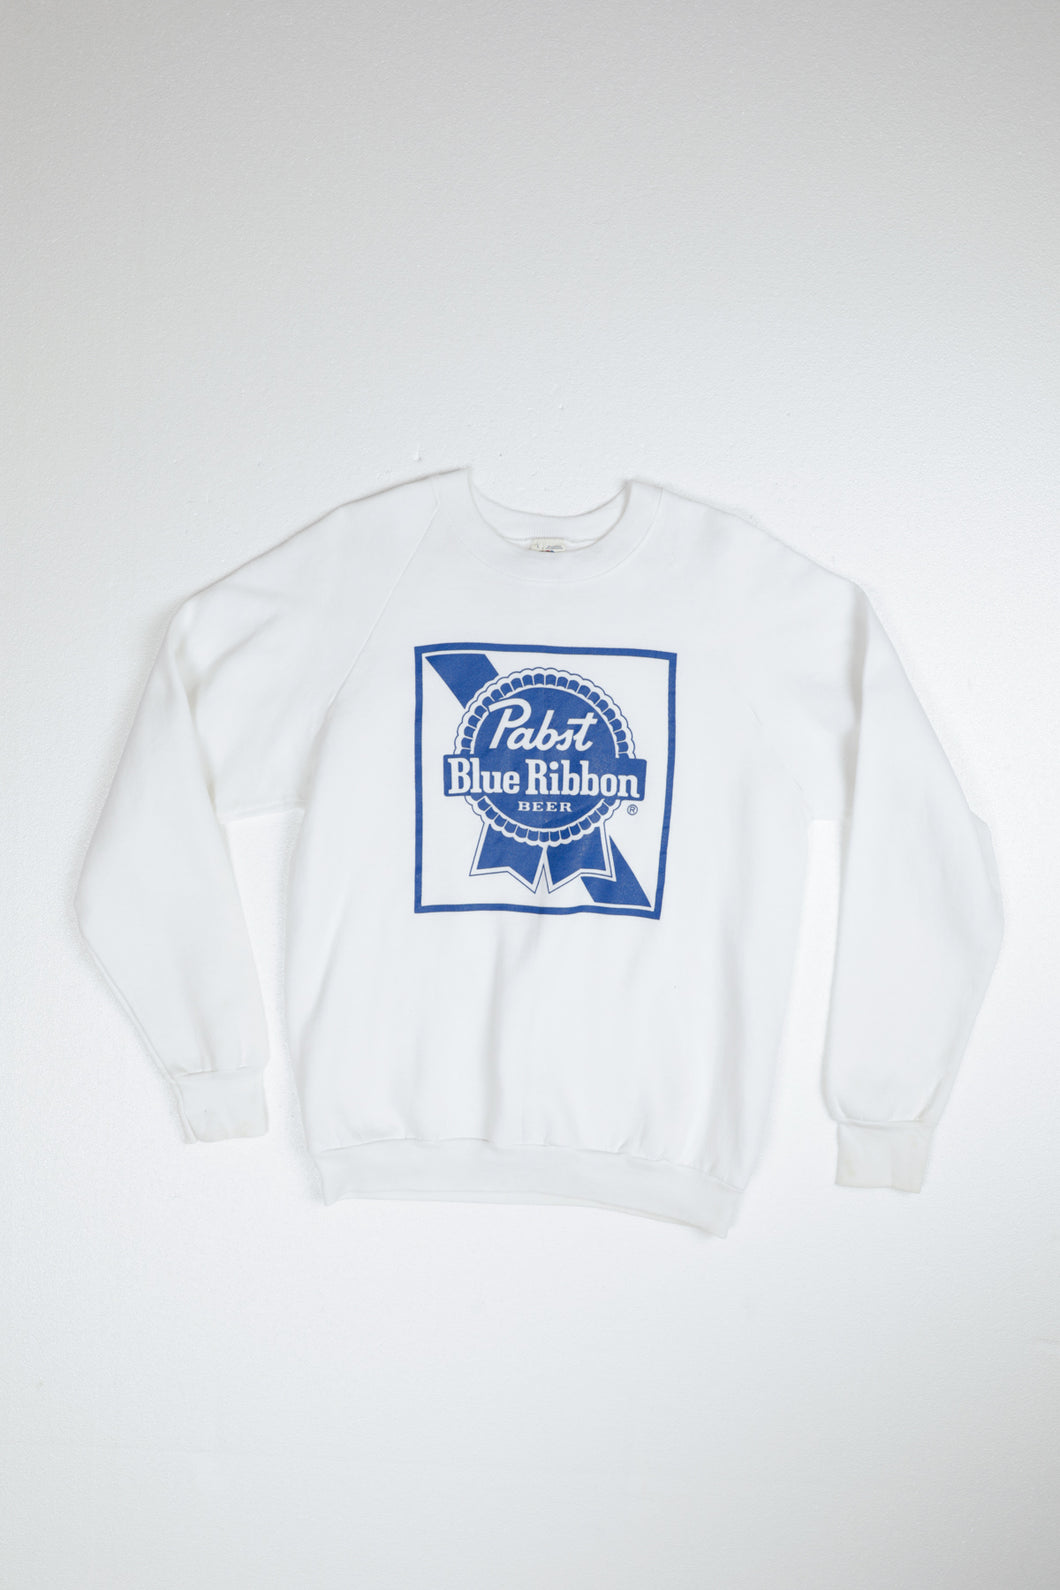 Pabst Blue Ribbon Beer Sweater